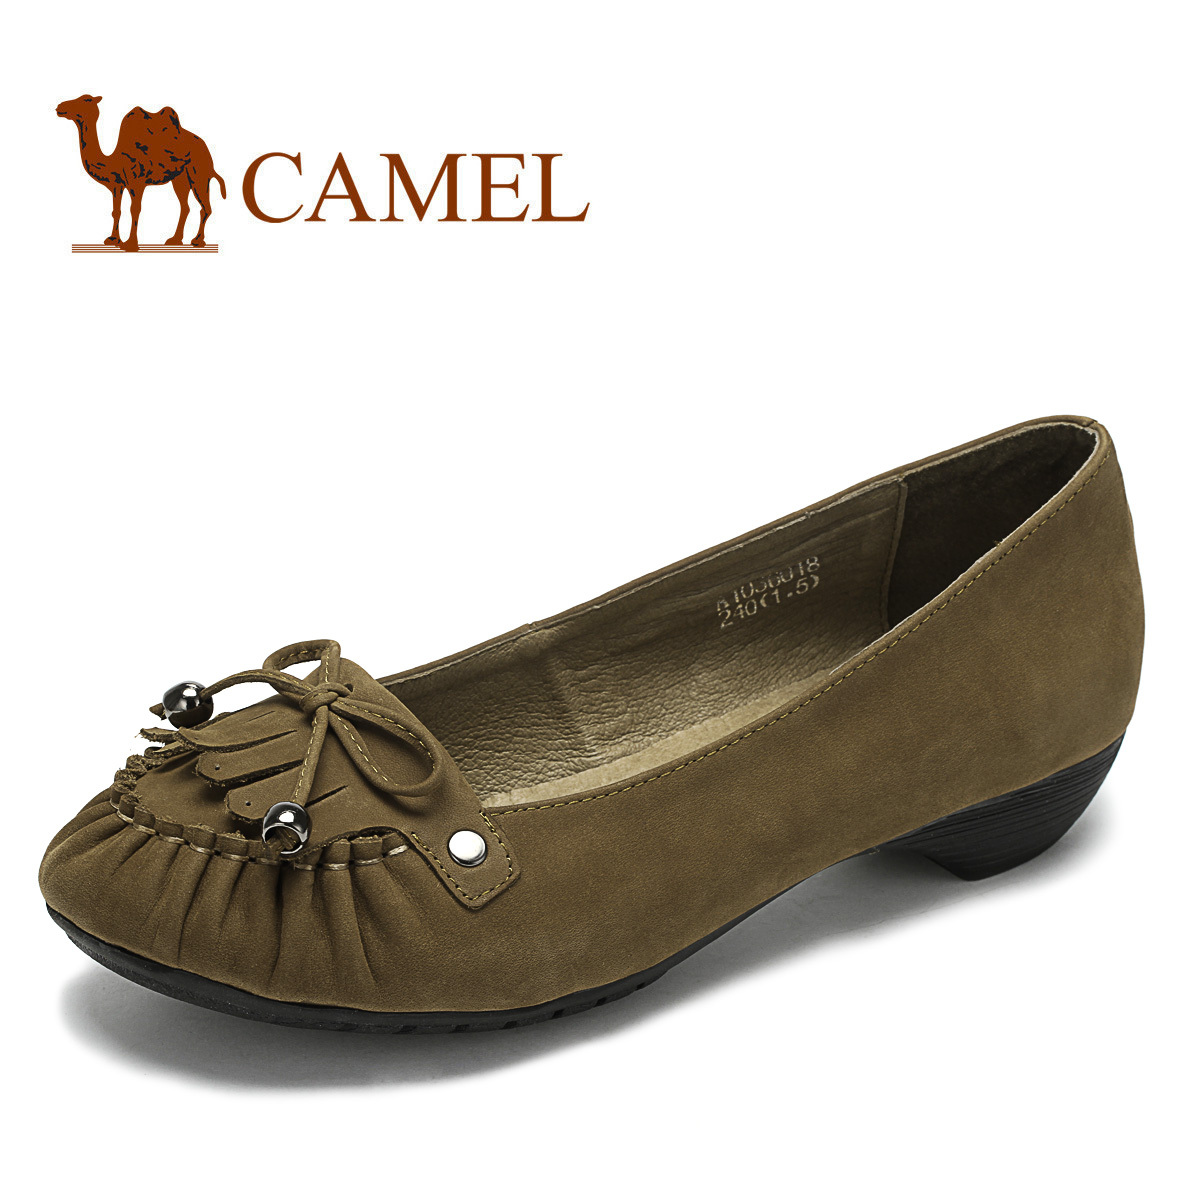 CAMEL camel women's shoes, matte leather feet, stylish and comfortable casual pointed shoes, shallow mouth shoes